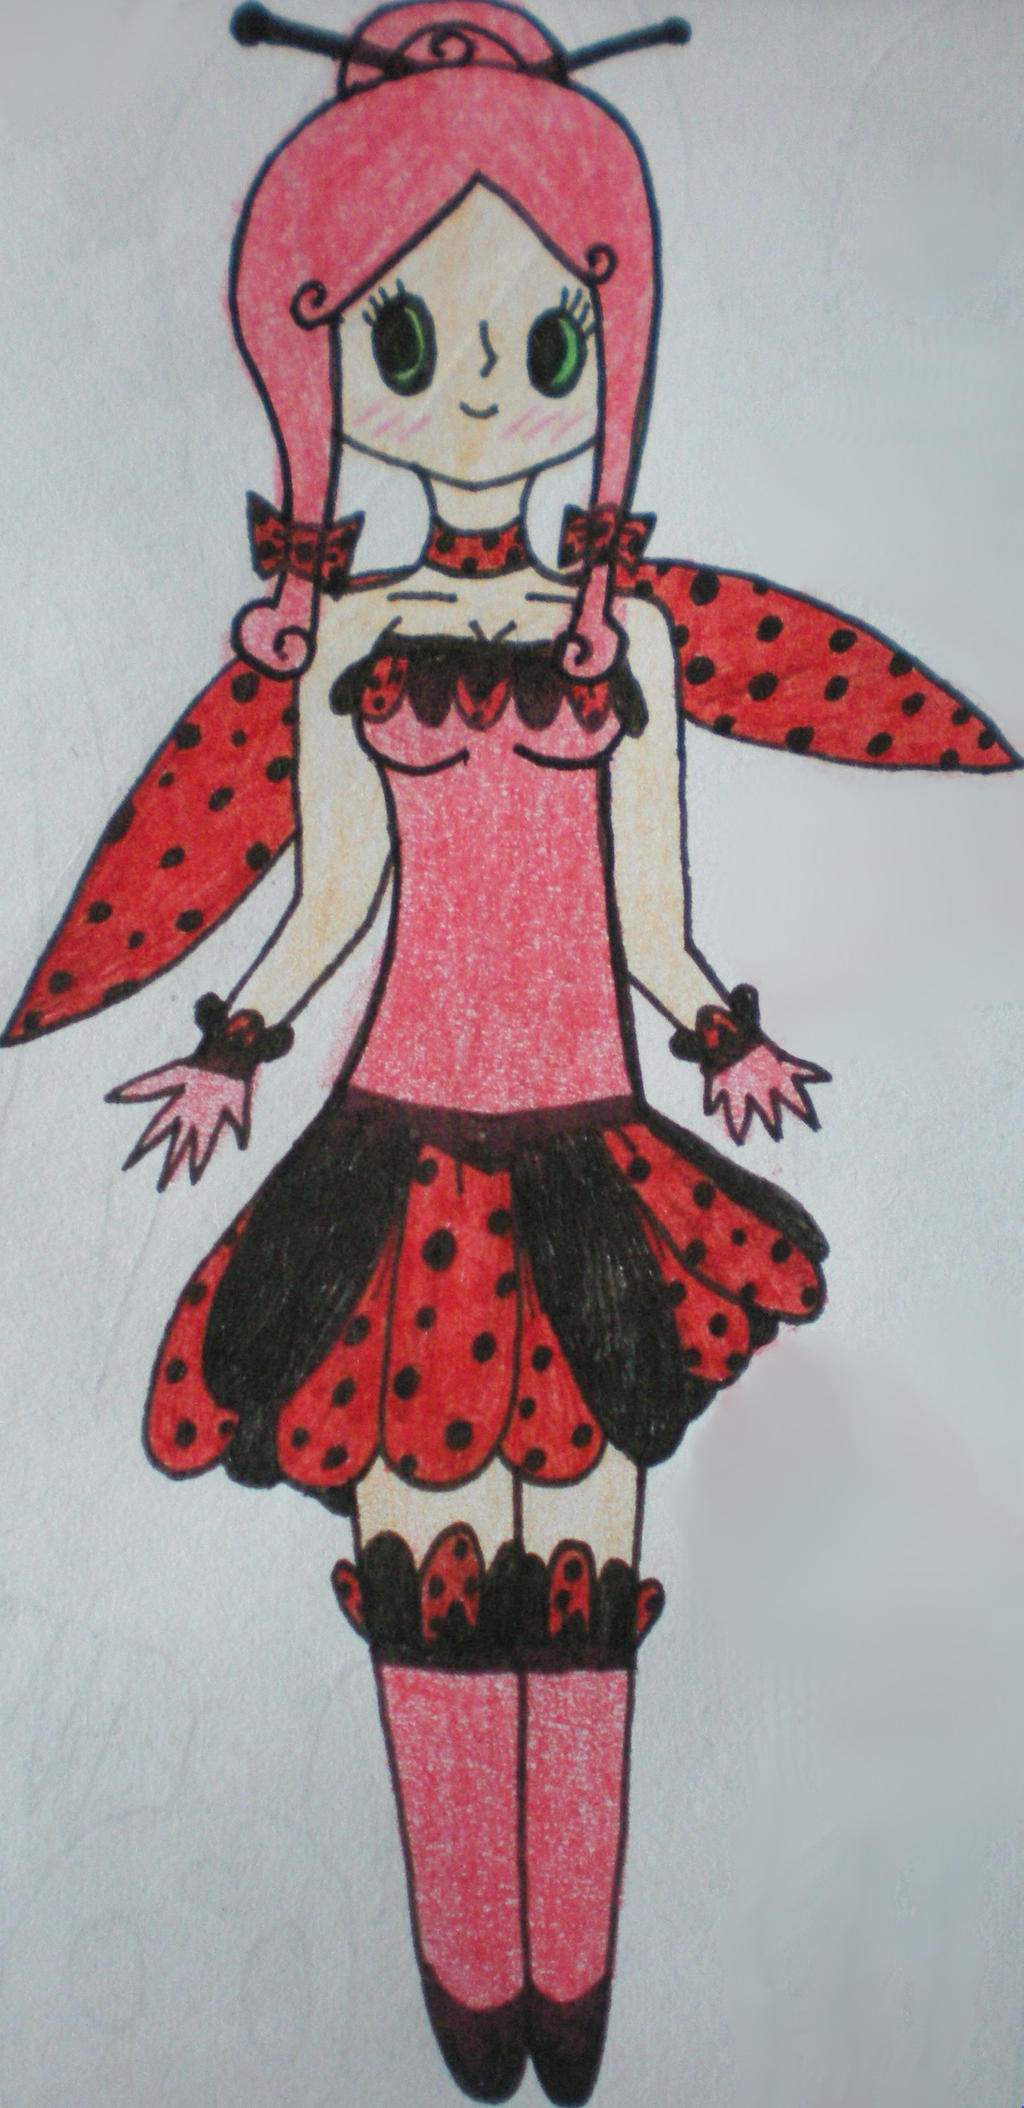 Cute Ladybug Outfit By TeleviCat On DeviantArt